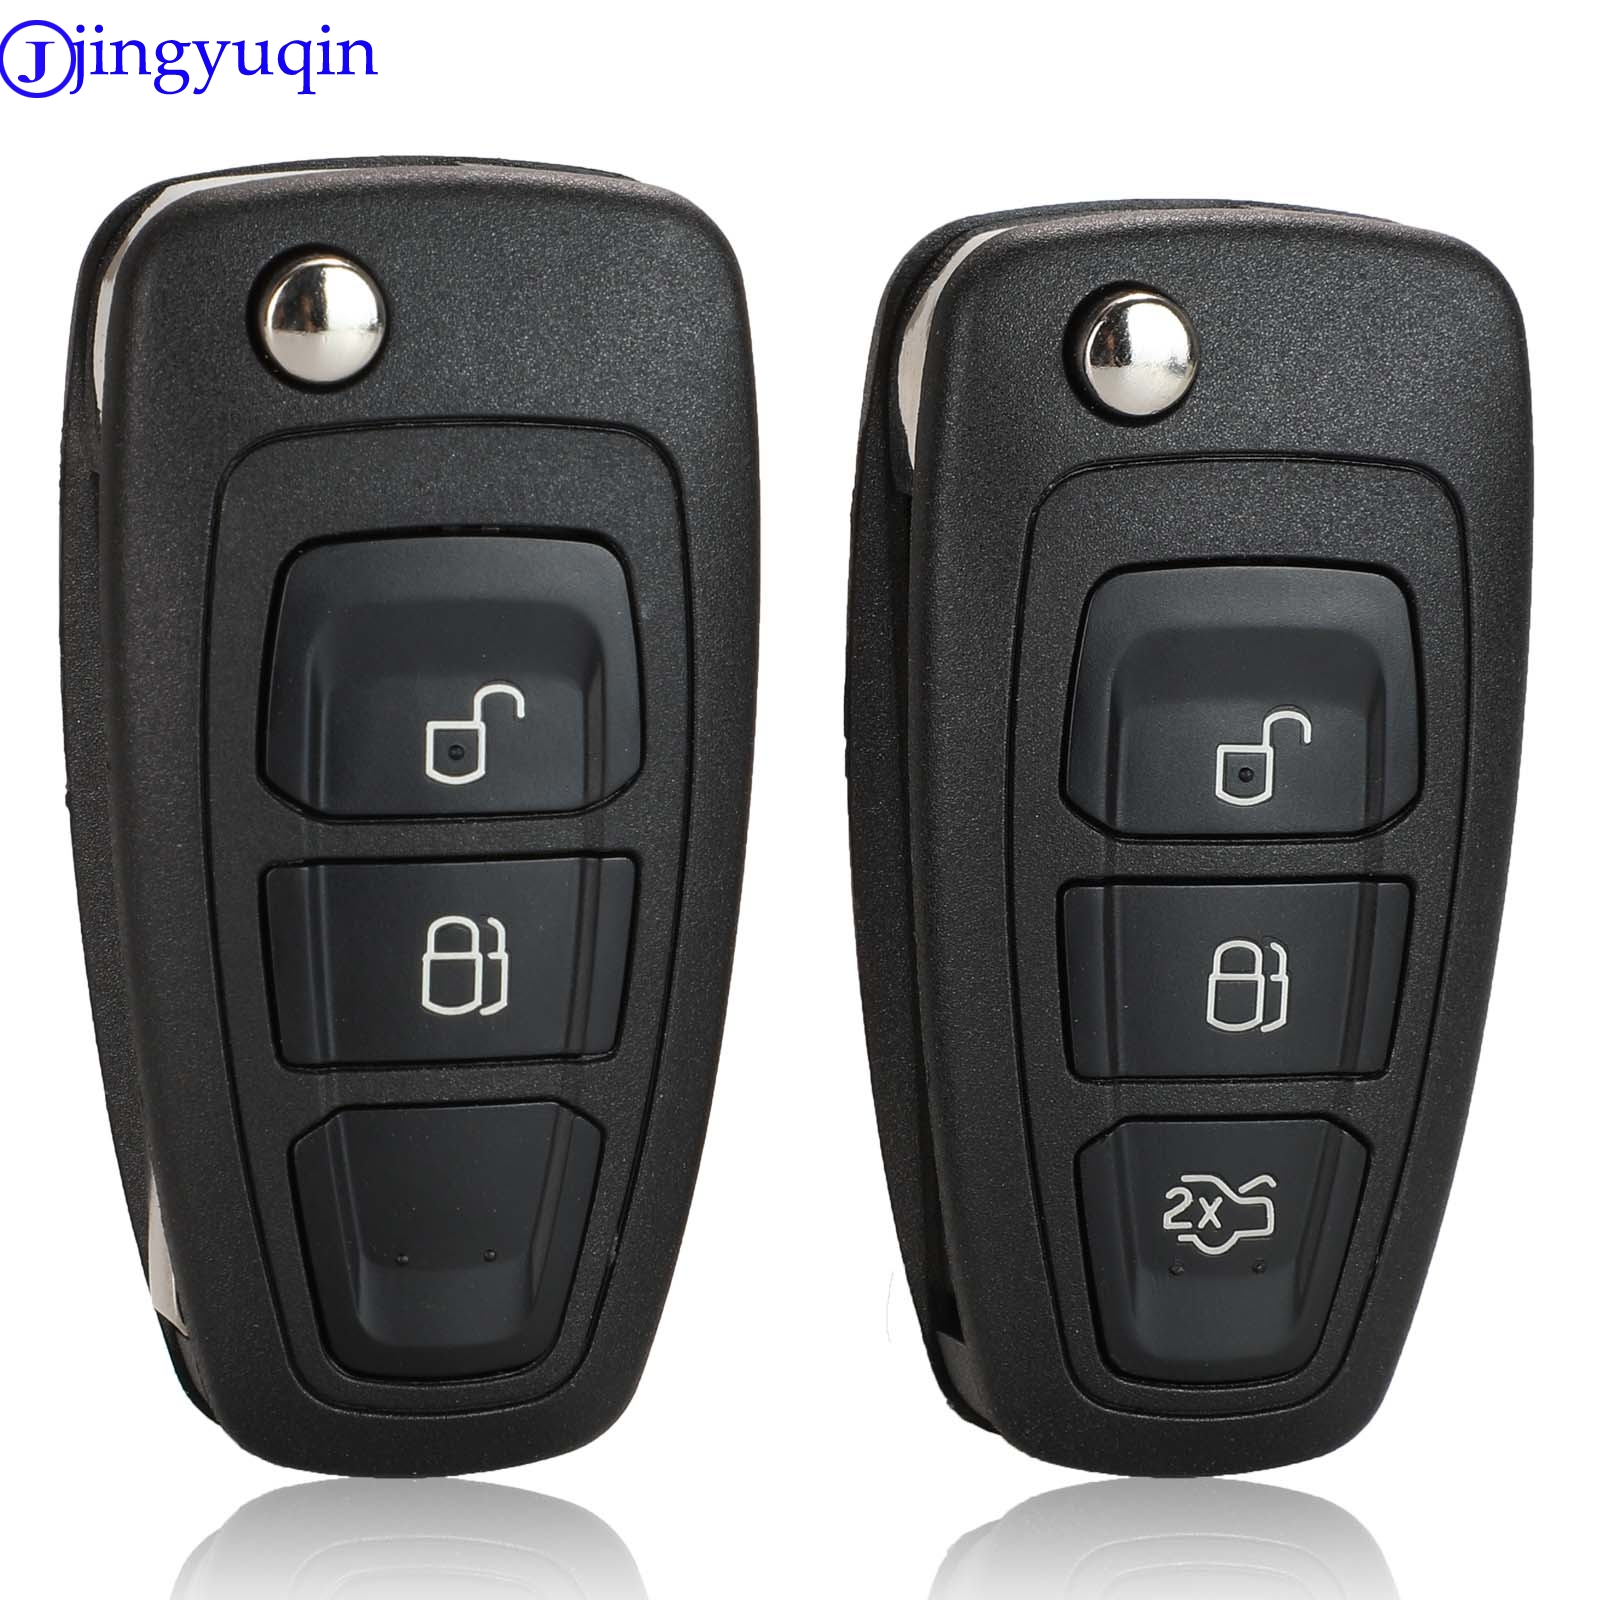 jingyuqin Remote Key Case Shell For Ford Ranger 2011 2012 2013 2014 2015 2 Button HU101 title=